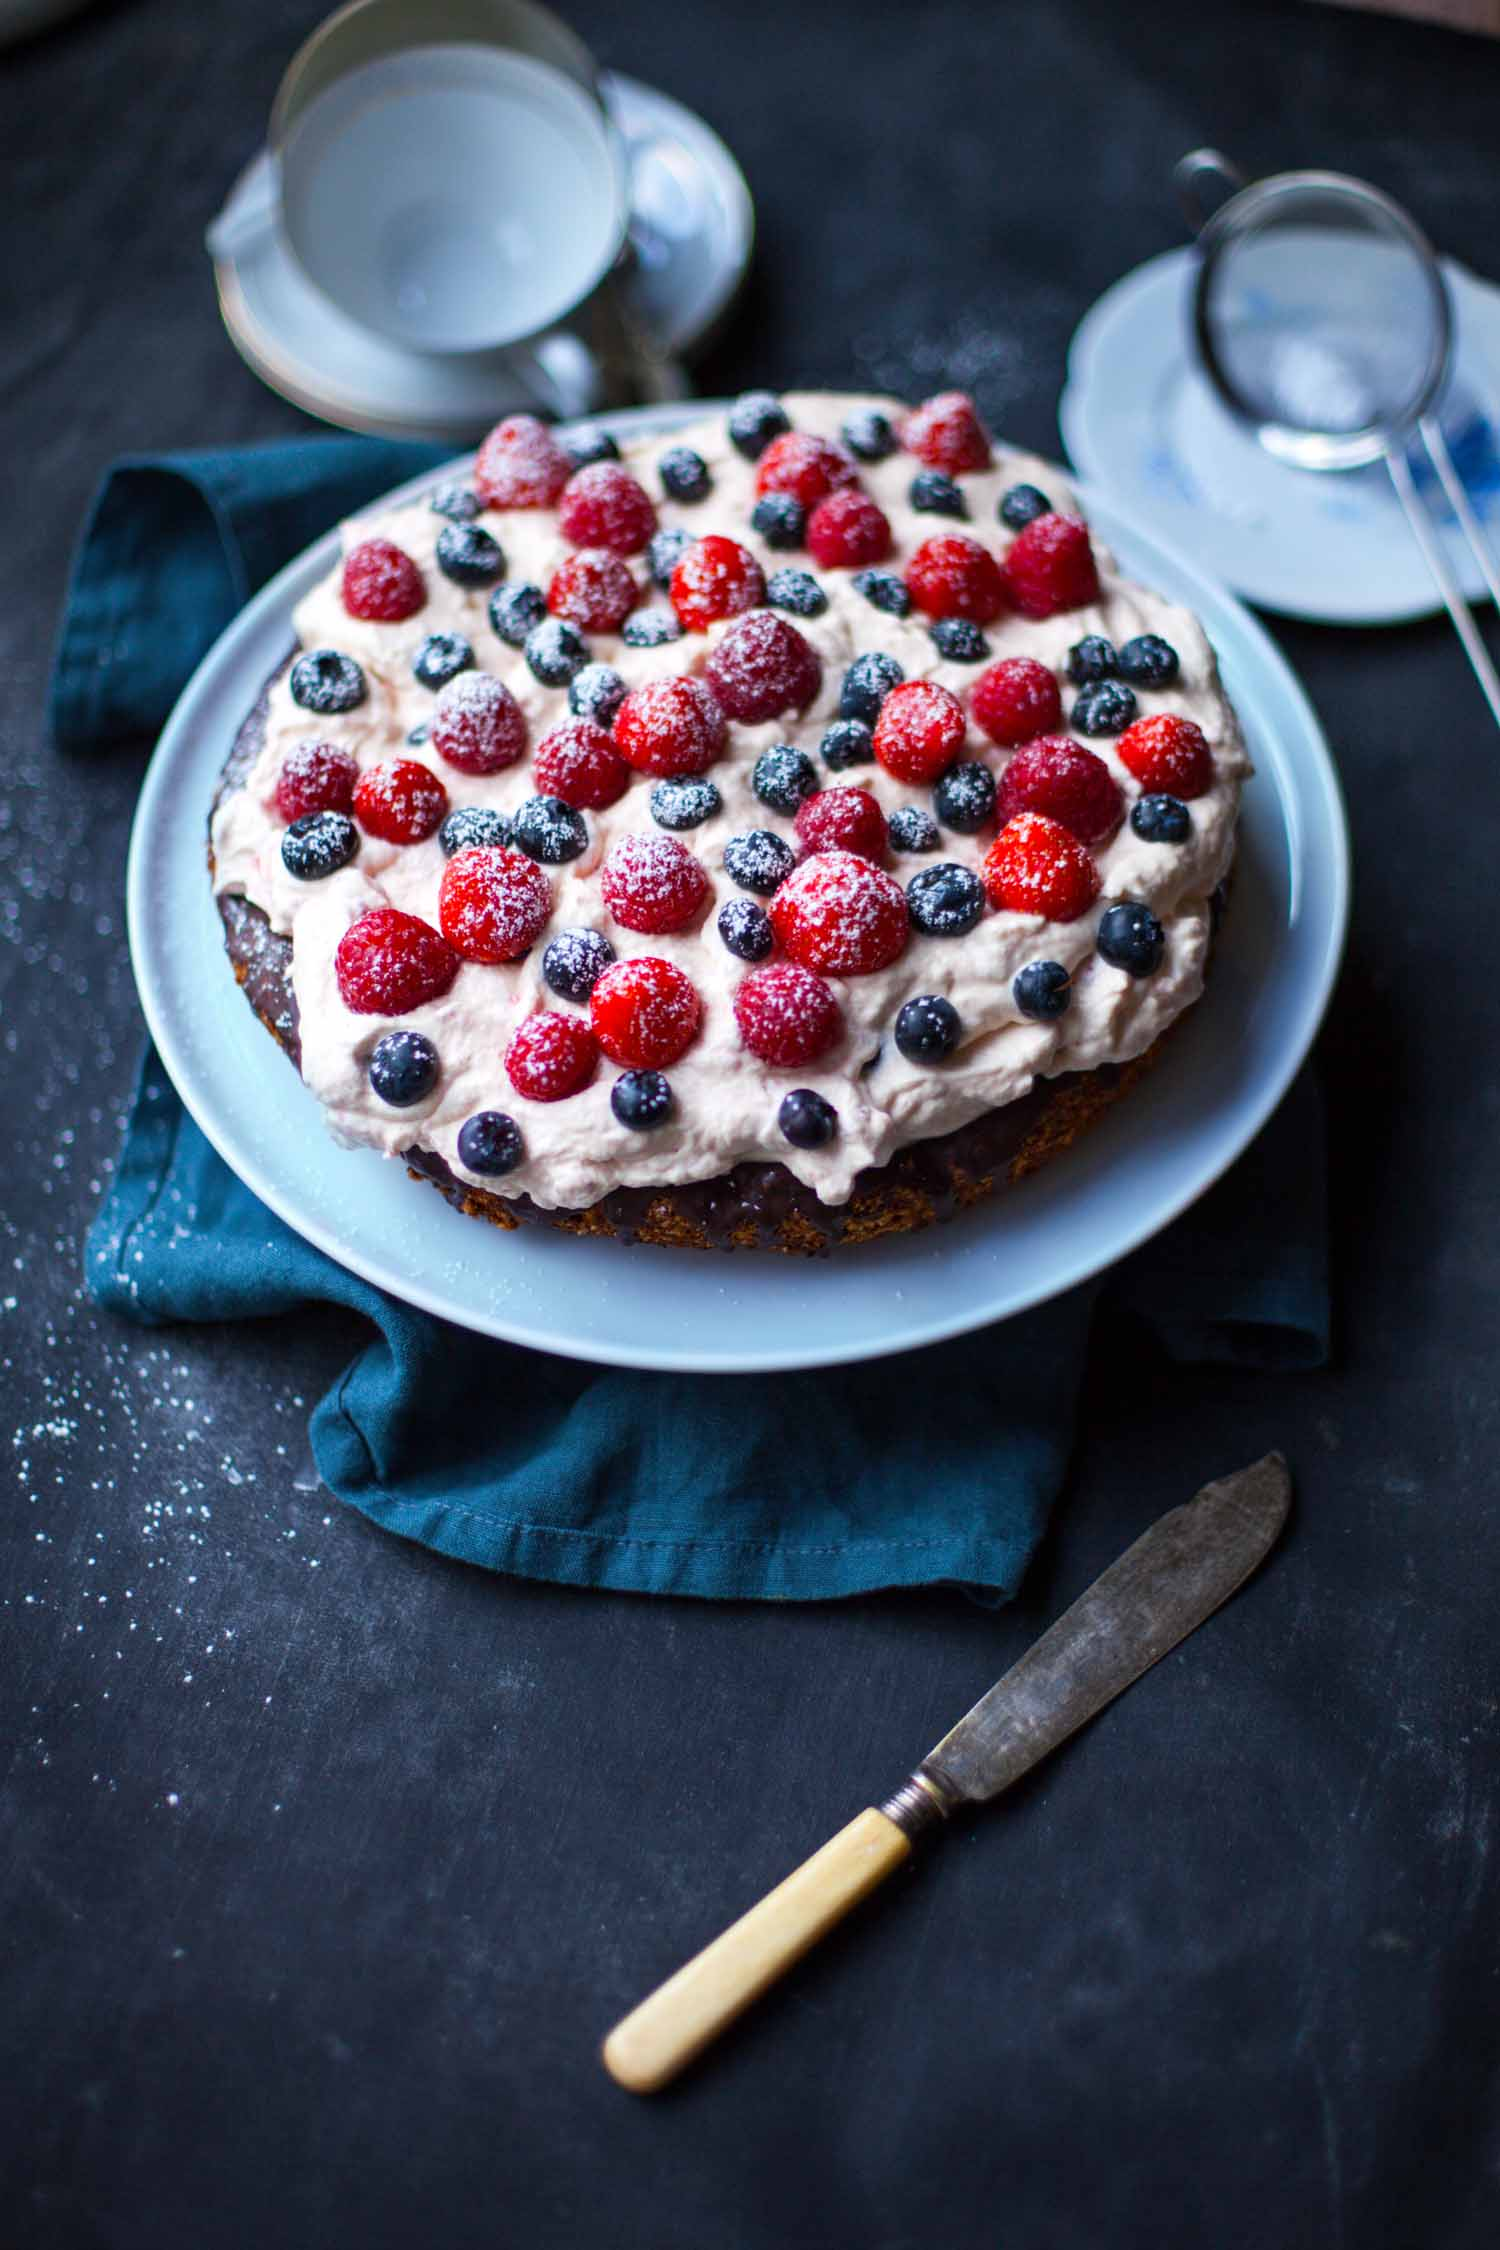 Cake Made with Mixed Nuts, Chocolate and Berry Foam